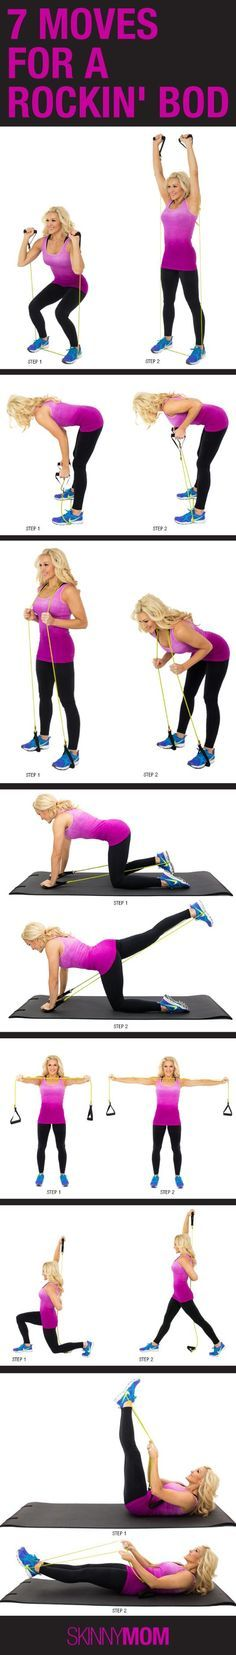 Get back that rockin' body with these 7 moves!